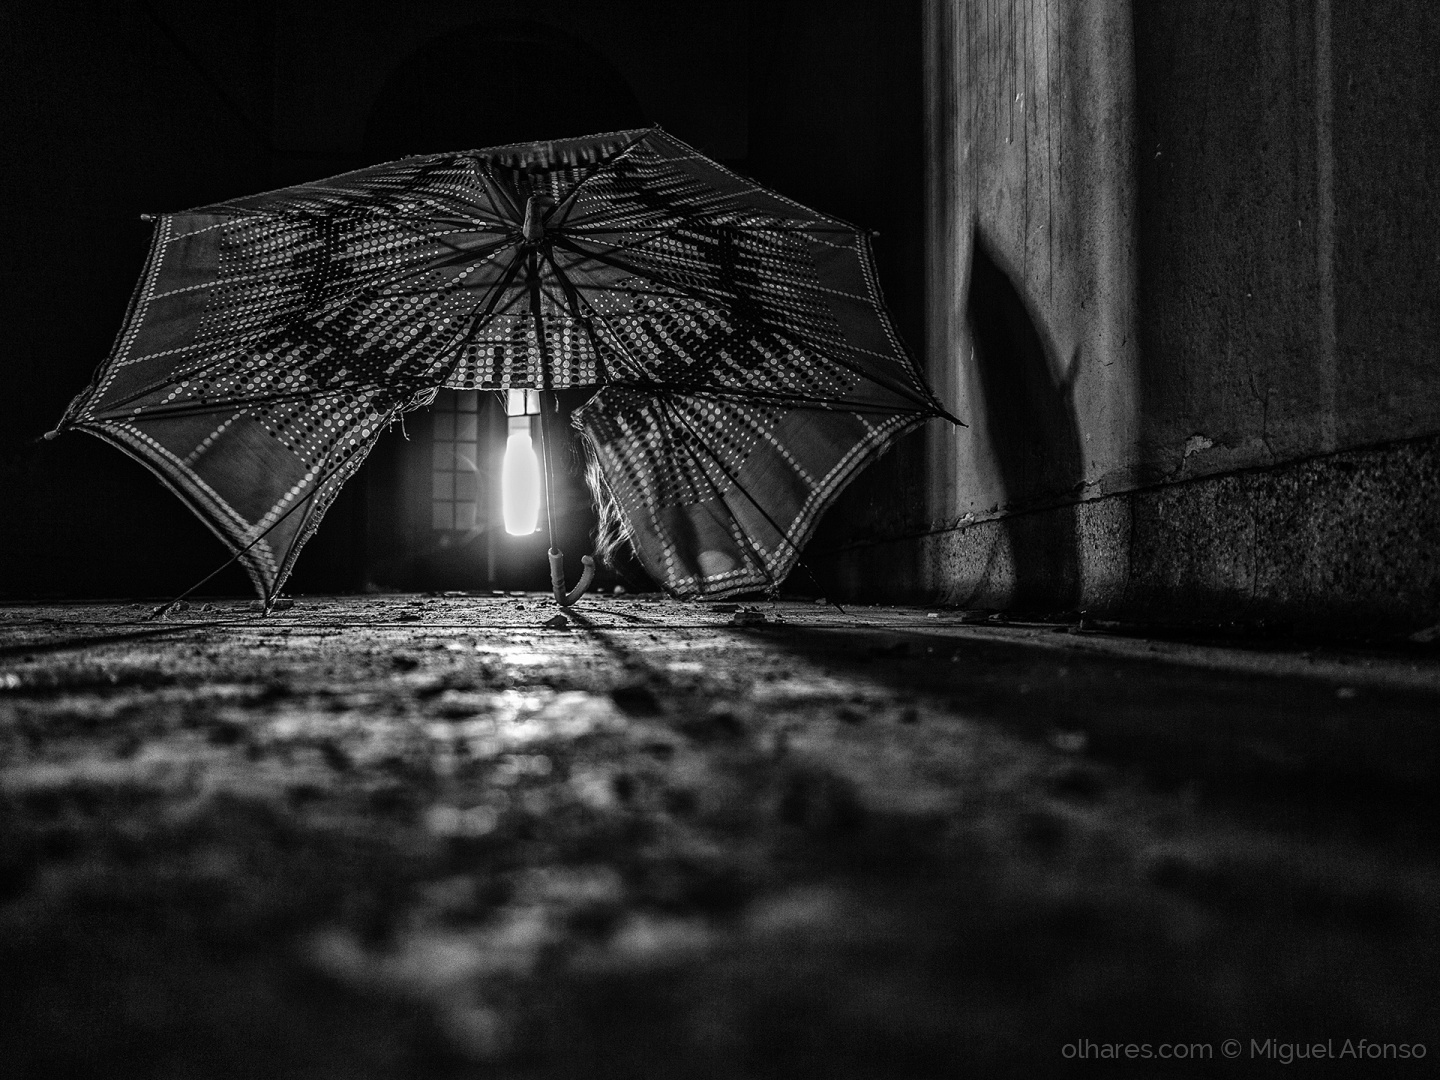 Paisagem Urbana/lost umbrella